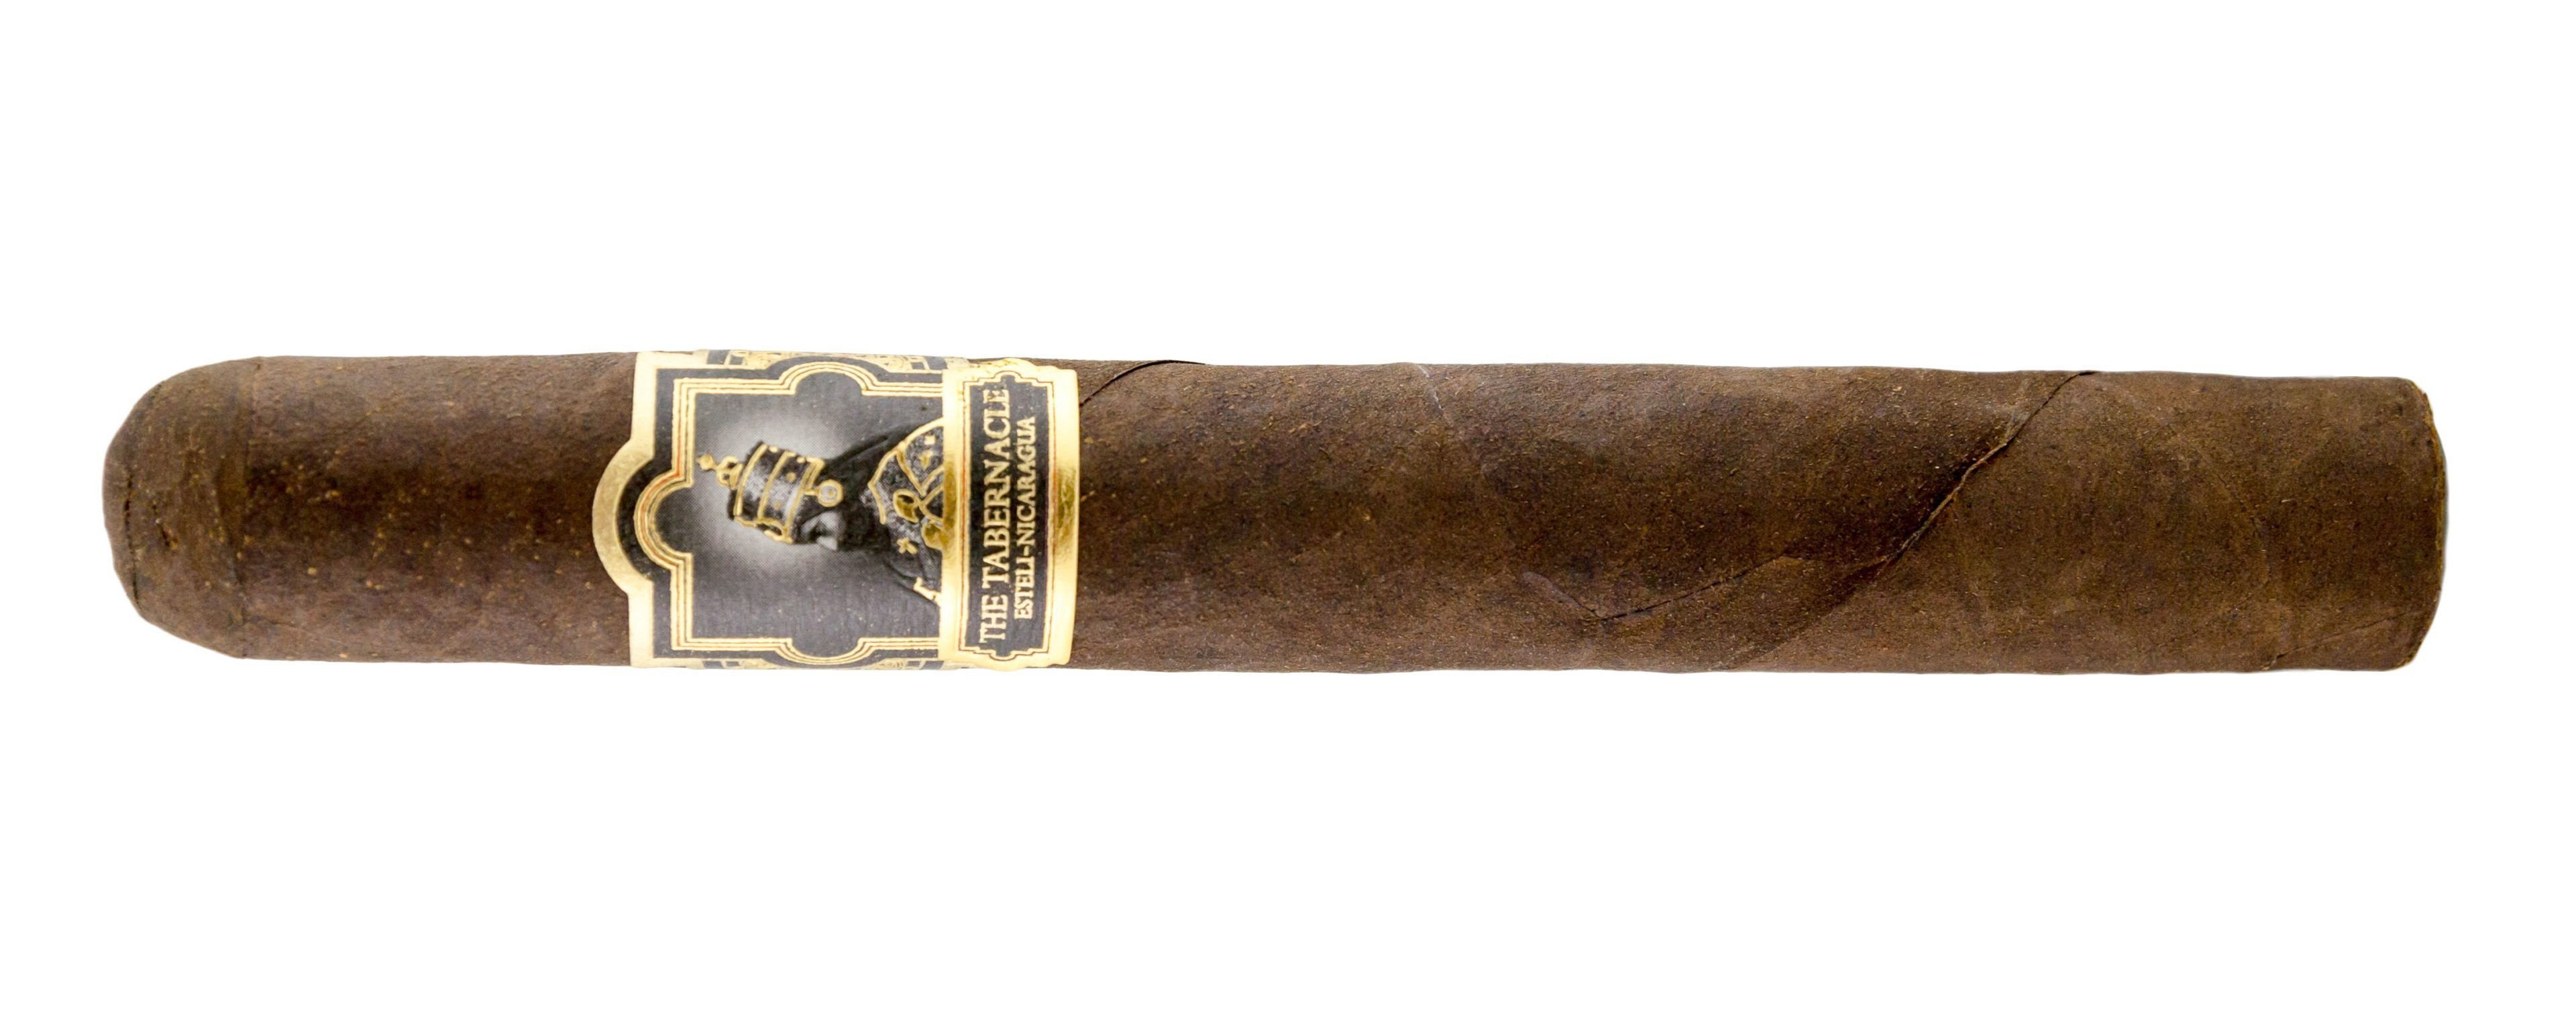 Blind Cigar Review: Foundation | The Tabernacle Toro